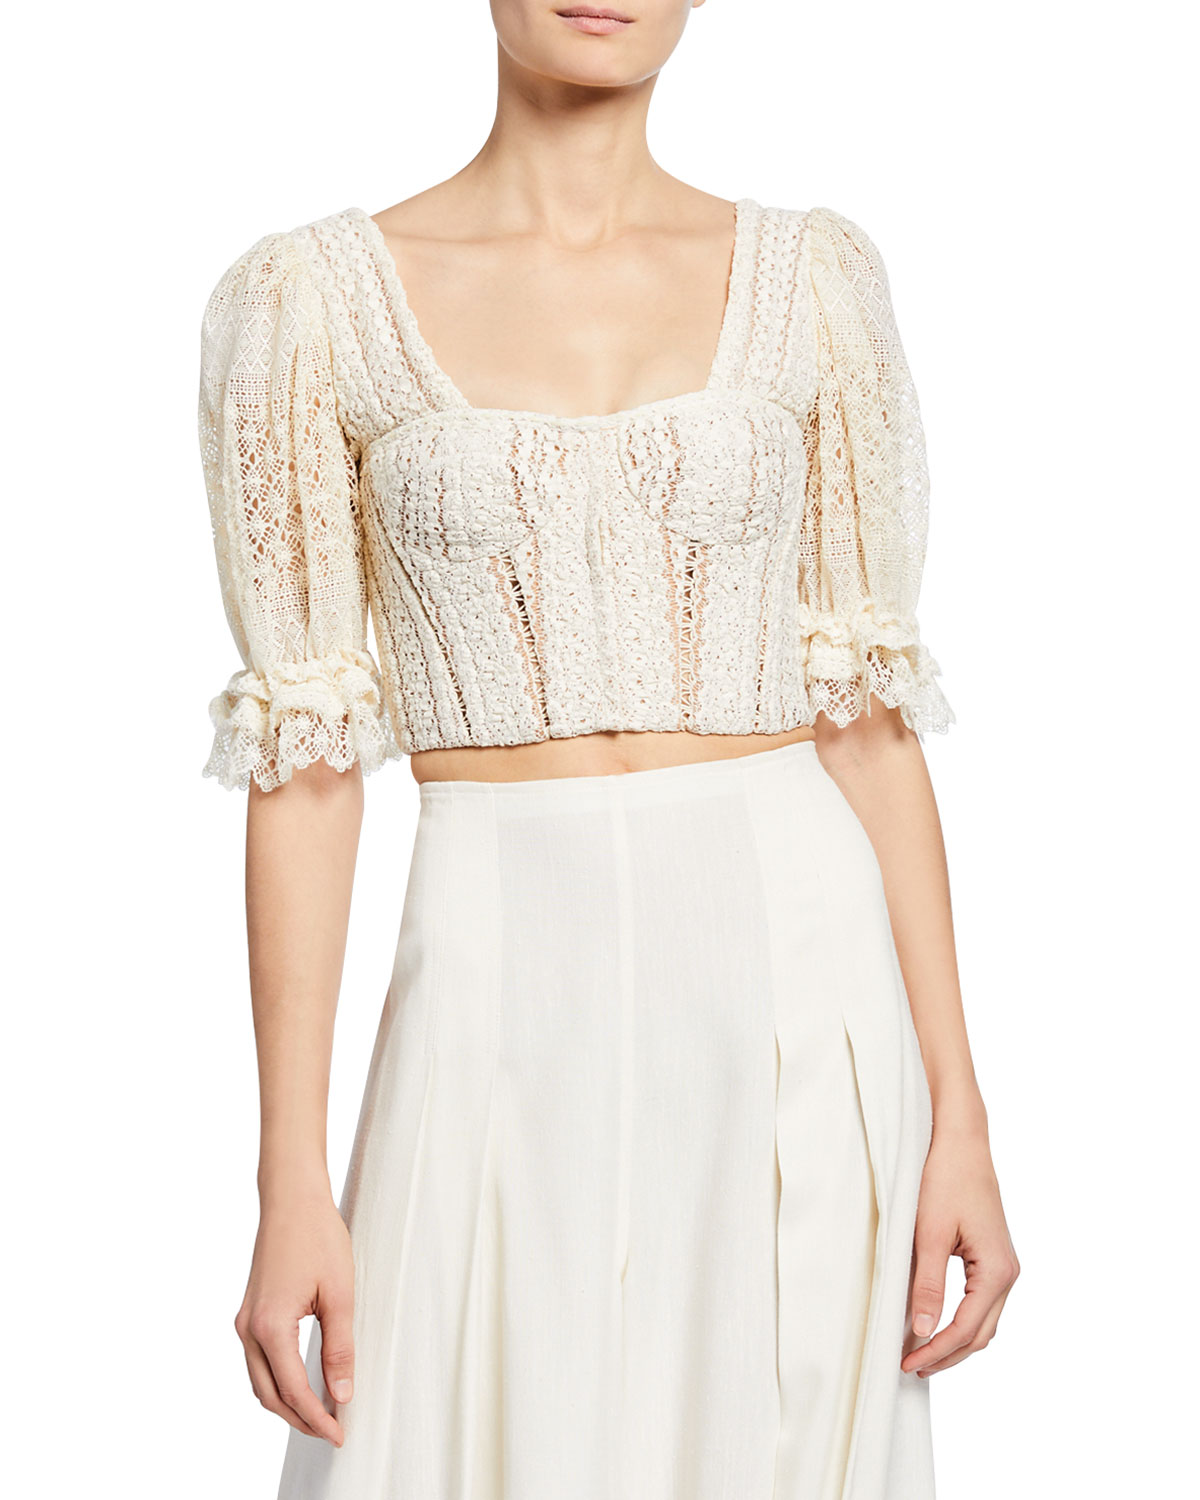 Jonathan Simkhai Tops Mixed Knit Lace Puff-Sleeve Bustier Top, WHITE